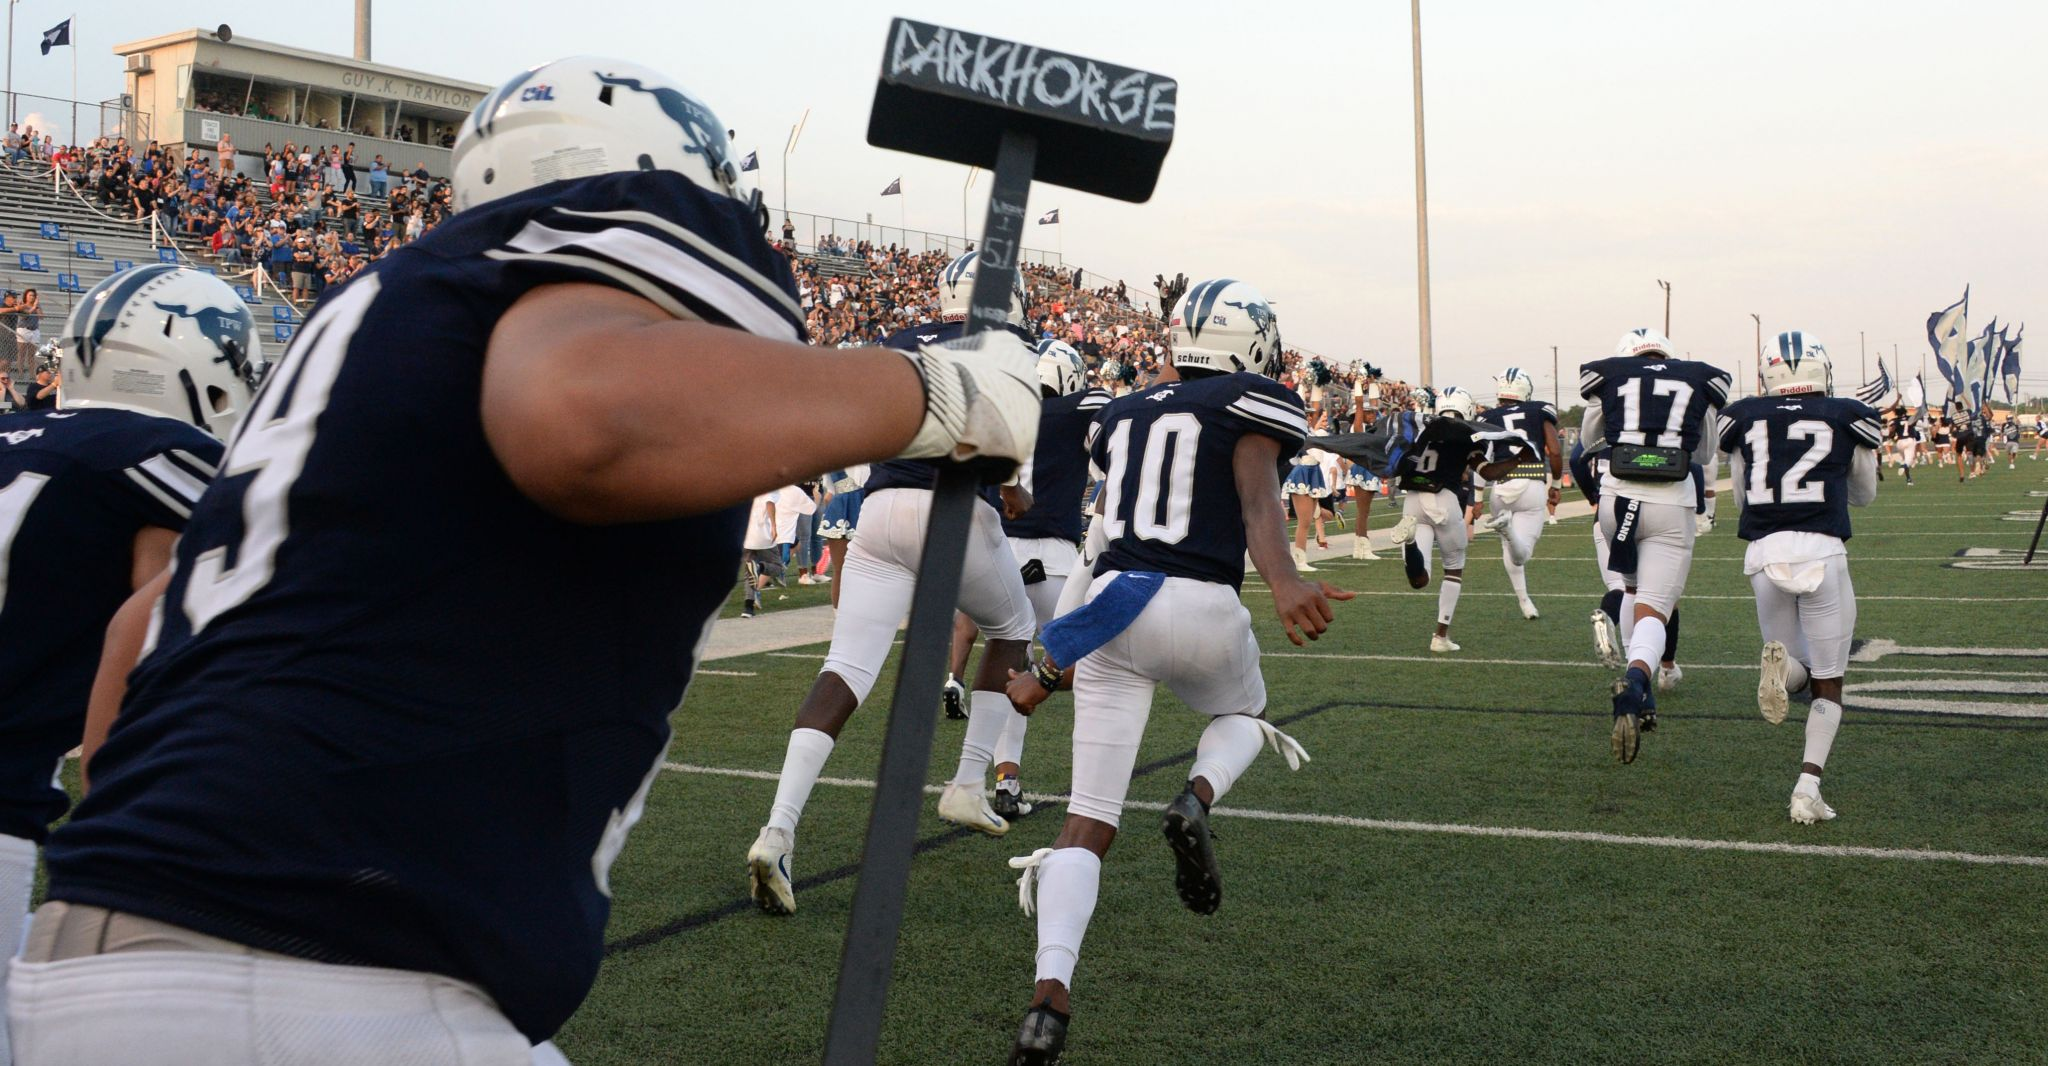 Friday night football scores from across Texas